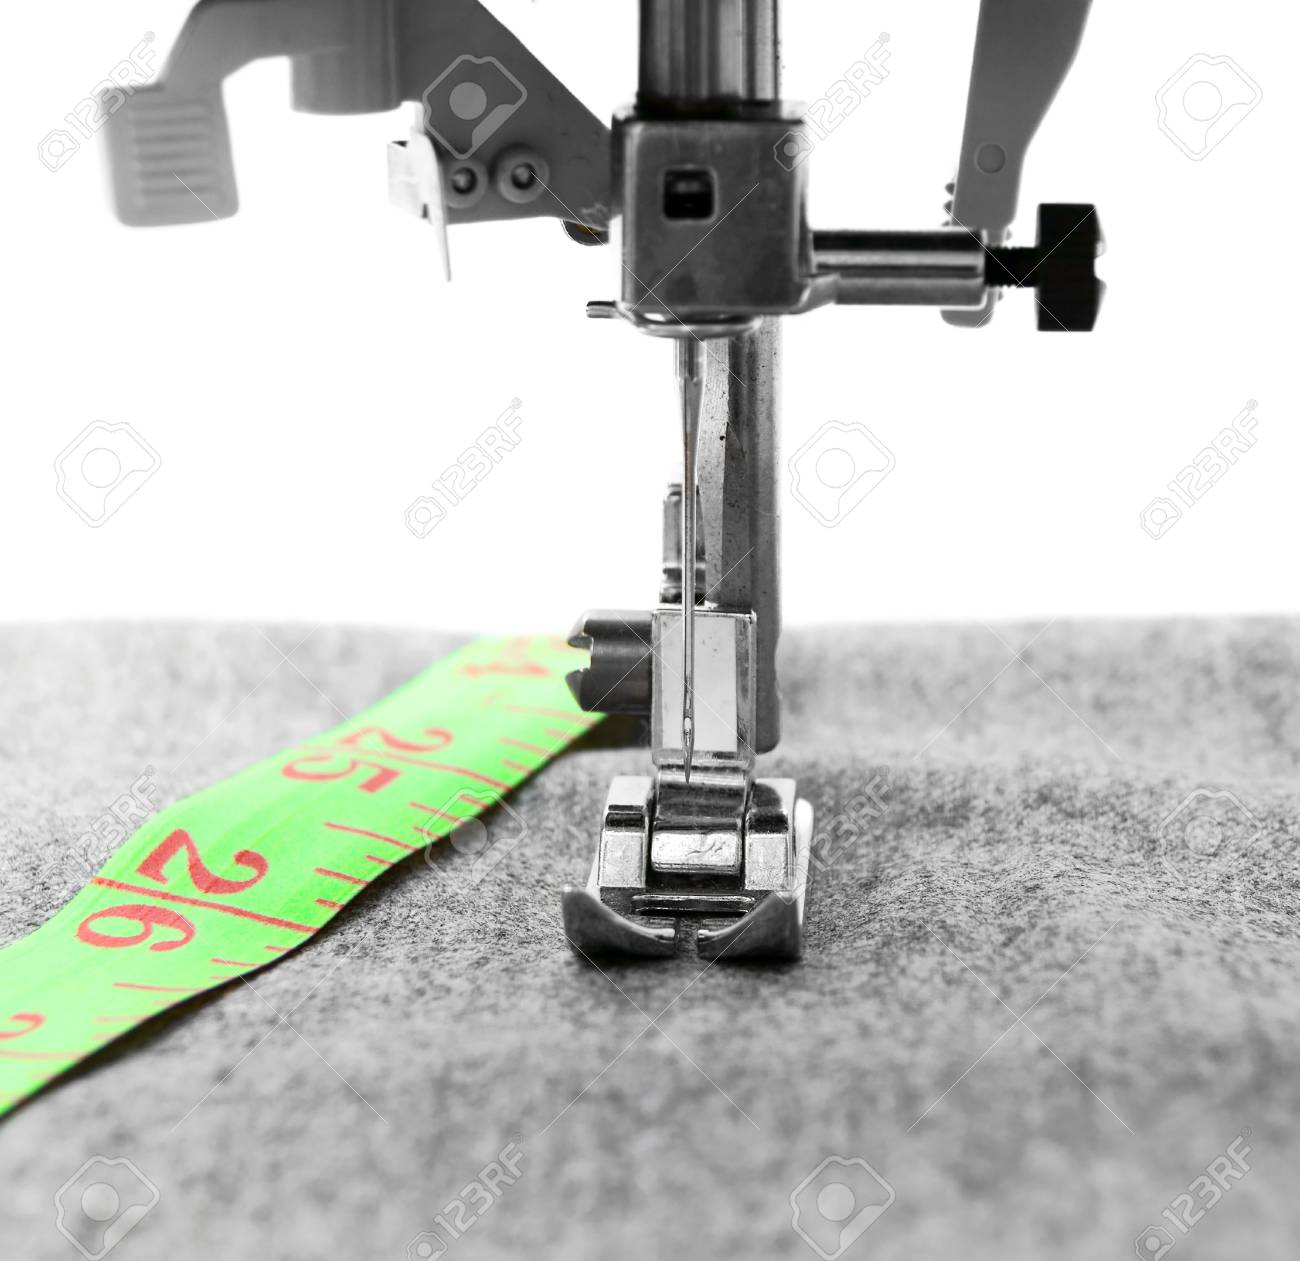 The sewing machine and measuring roulette Stock Photo - 13809944